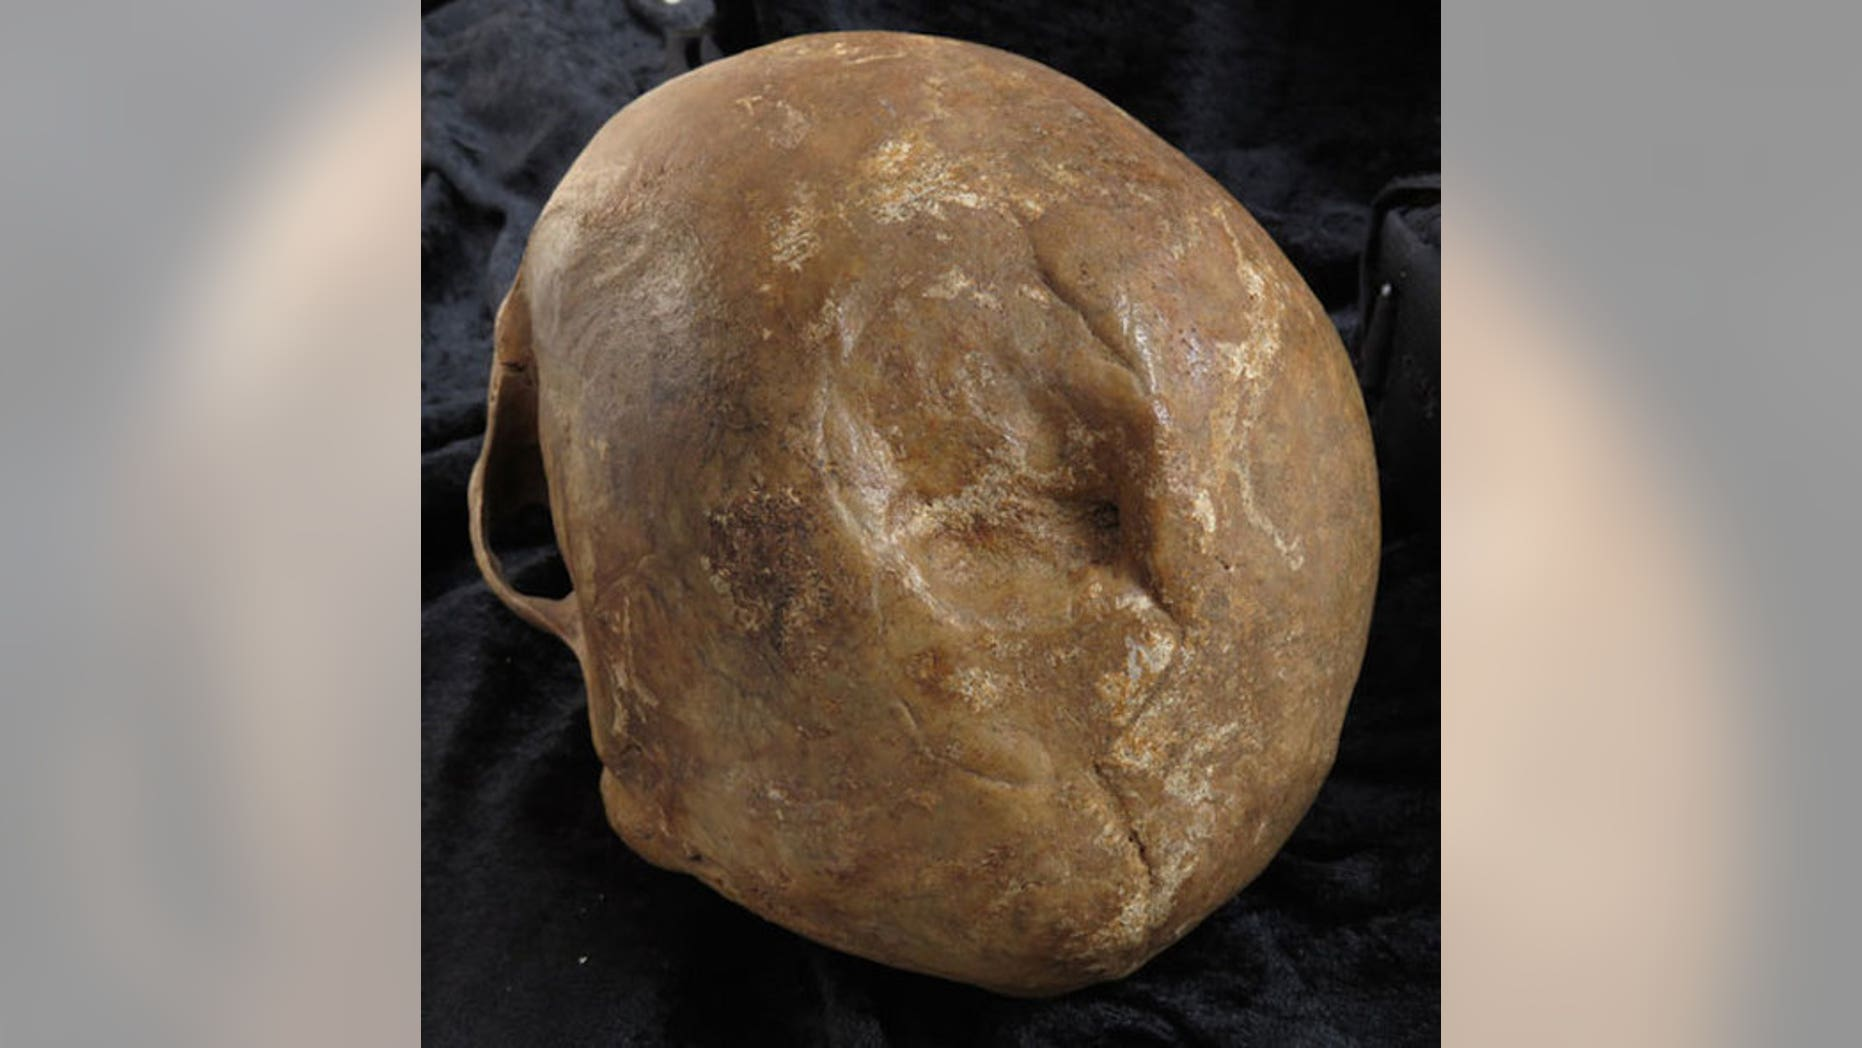 The smooth edges of this skull fracture suggest that the injury healed after the skull's owner, a man buried in Odense, Denmark, was hurt.